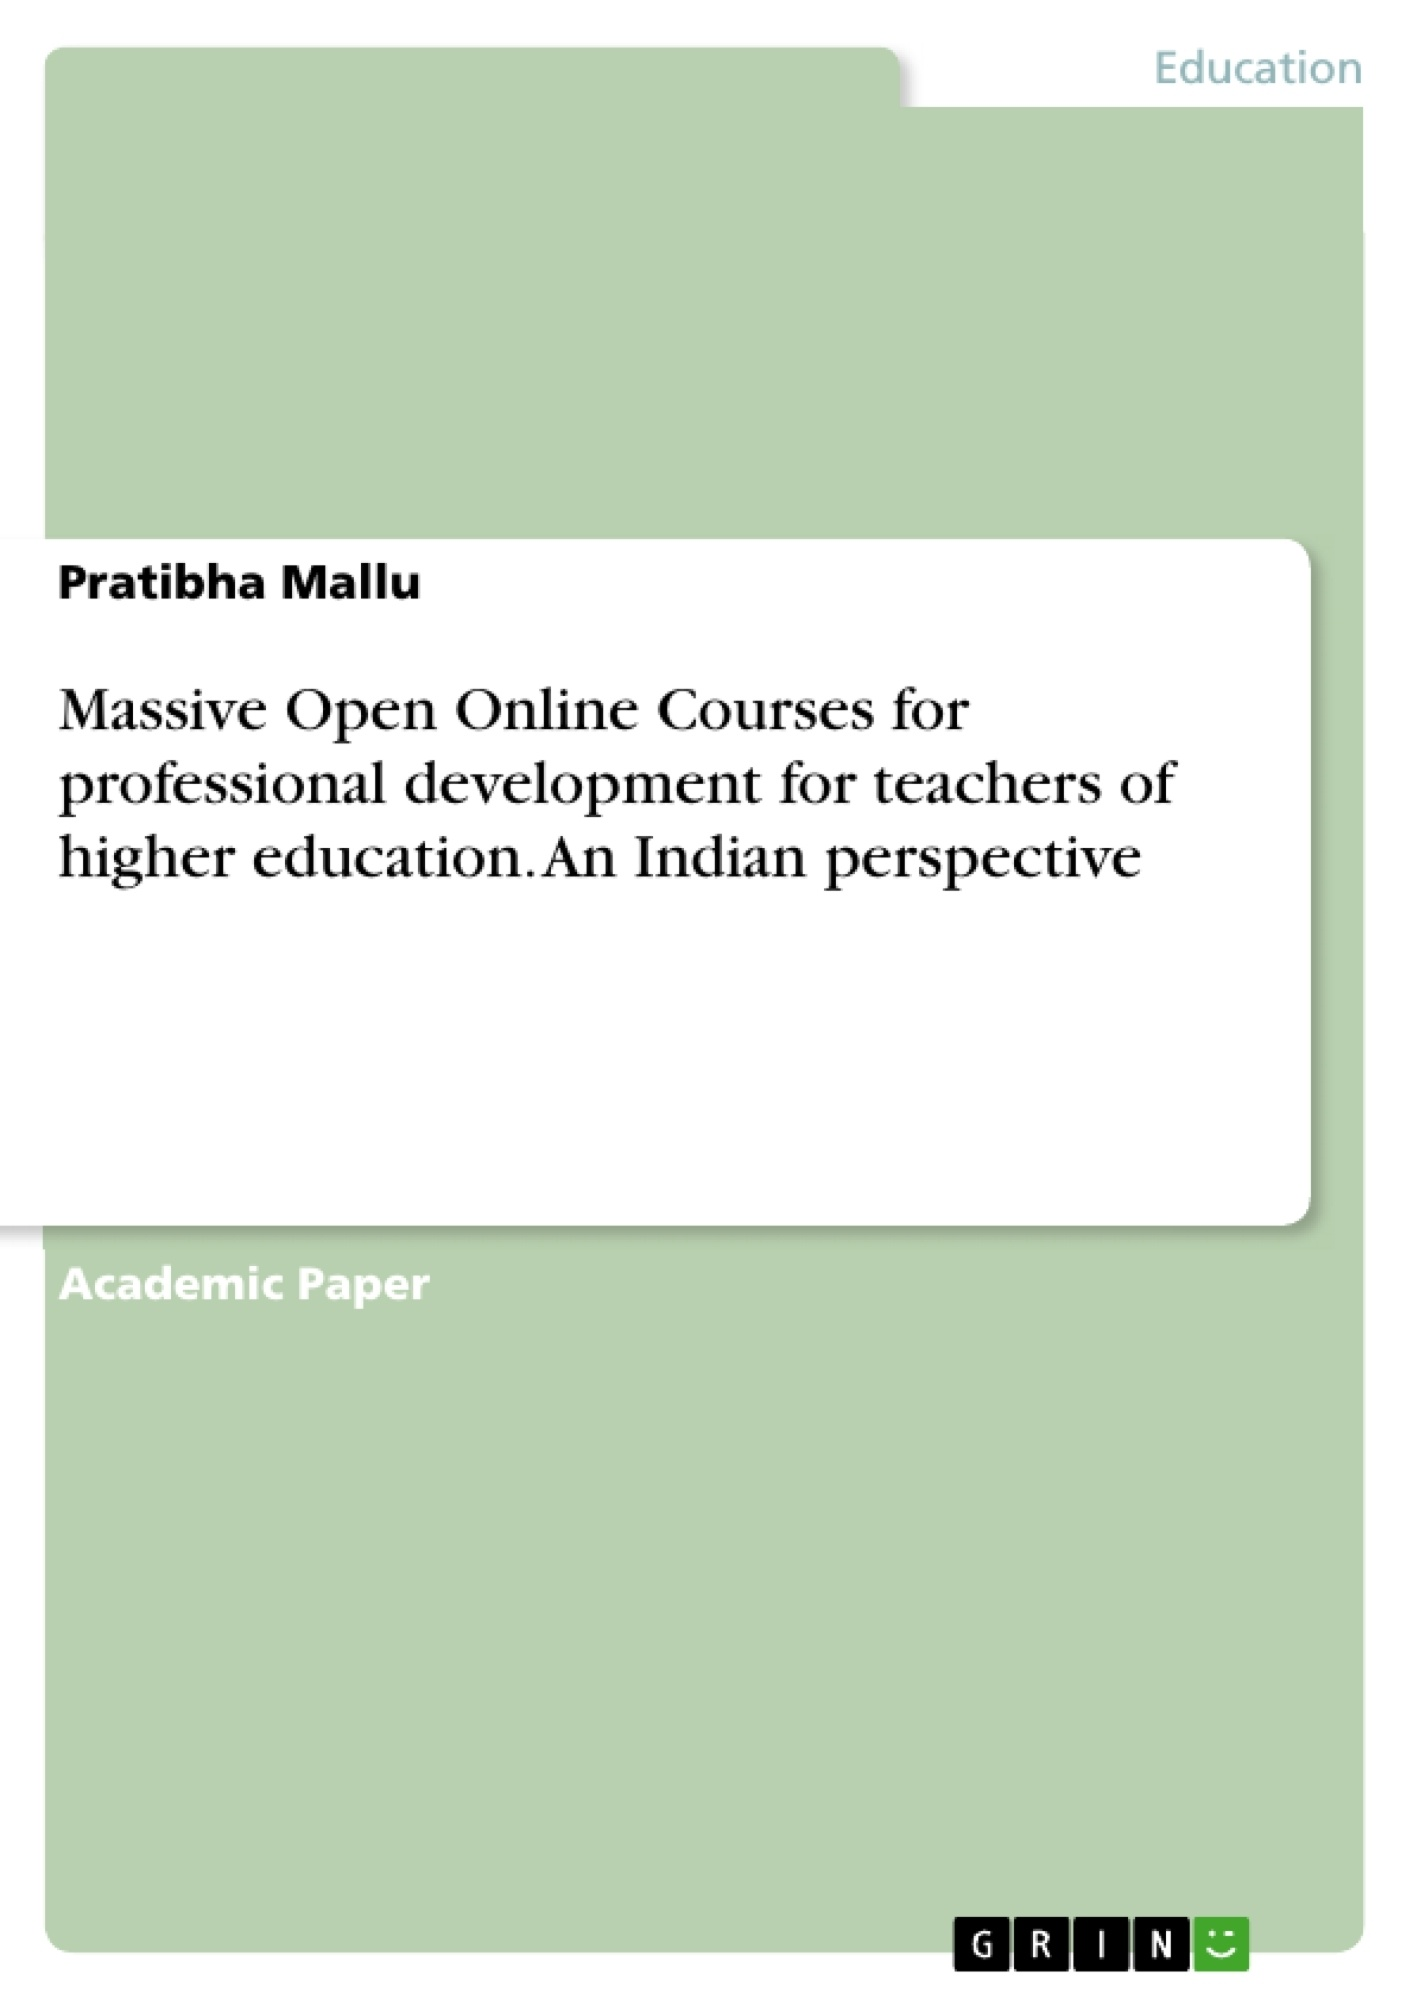 Title: Massive Open Online Courses for professional development for teachers of higher education. An Indian perspective